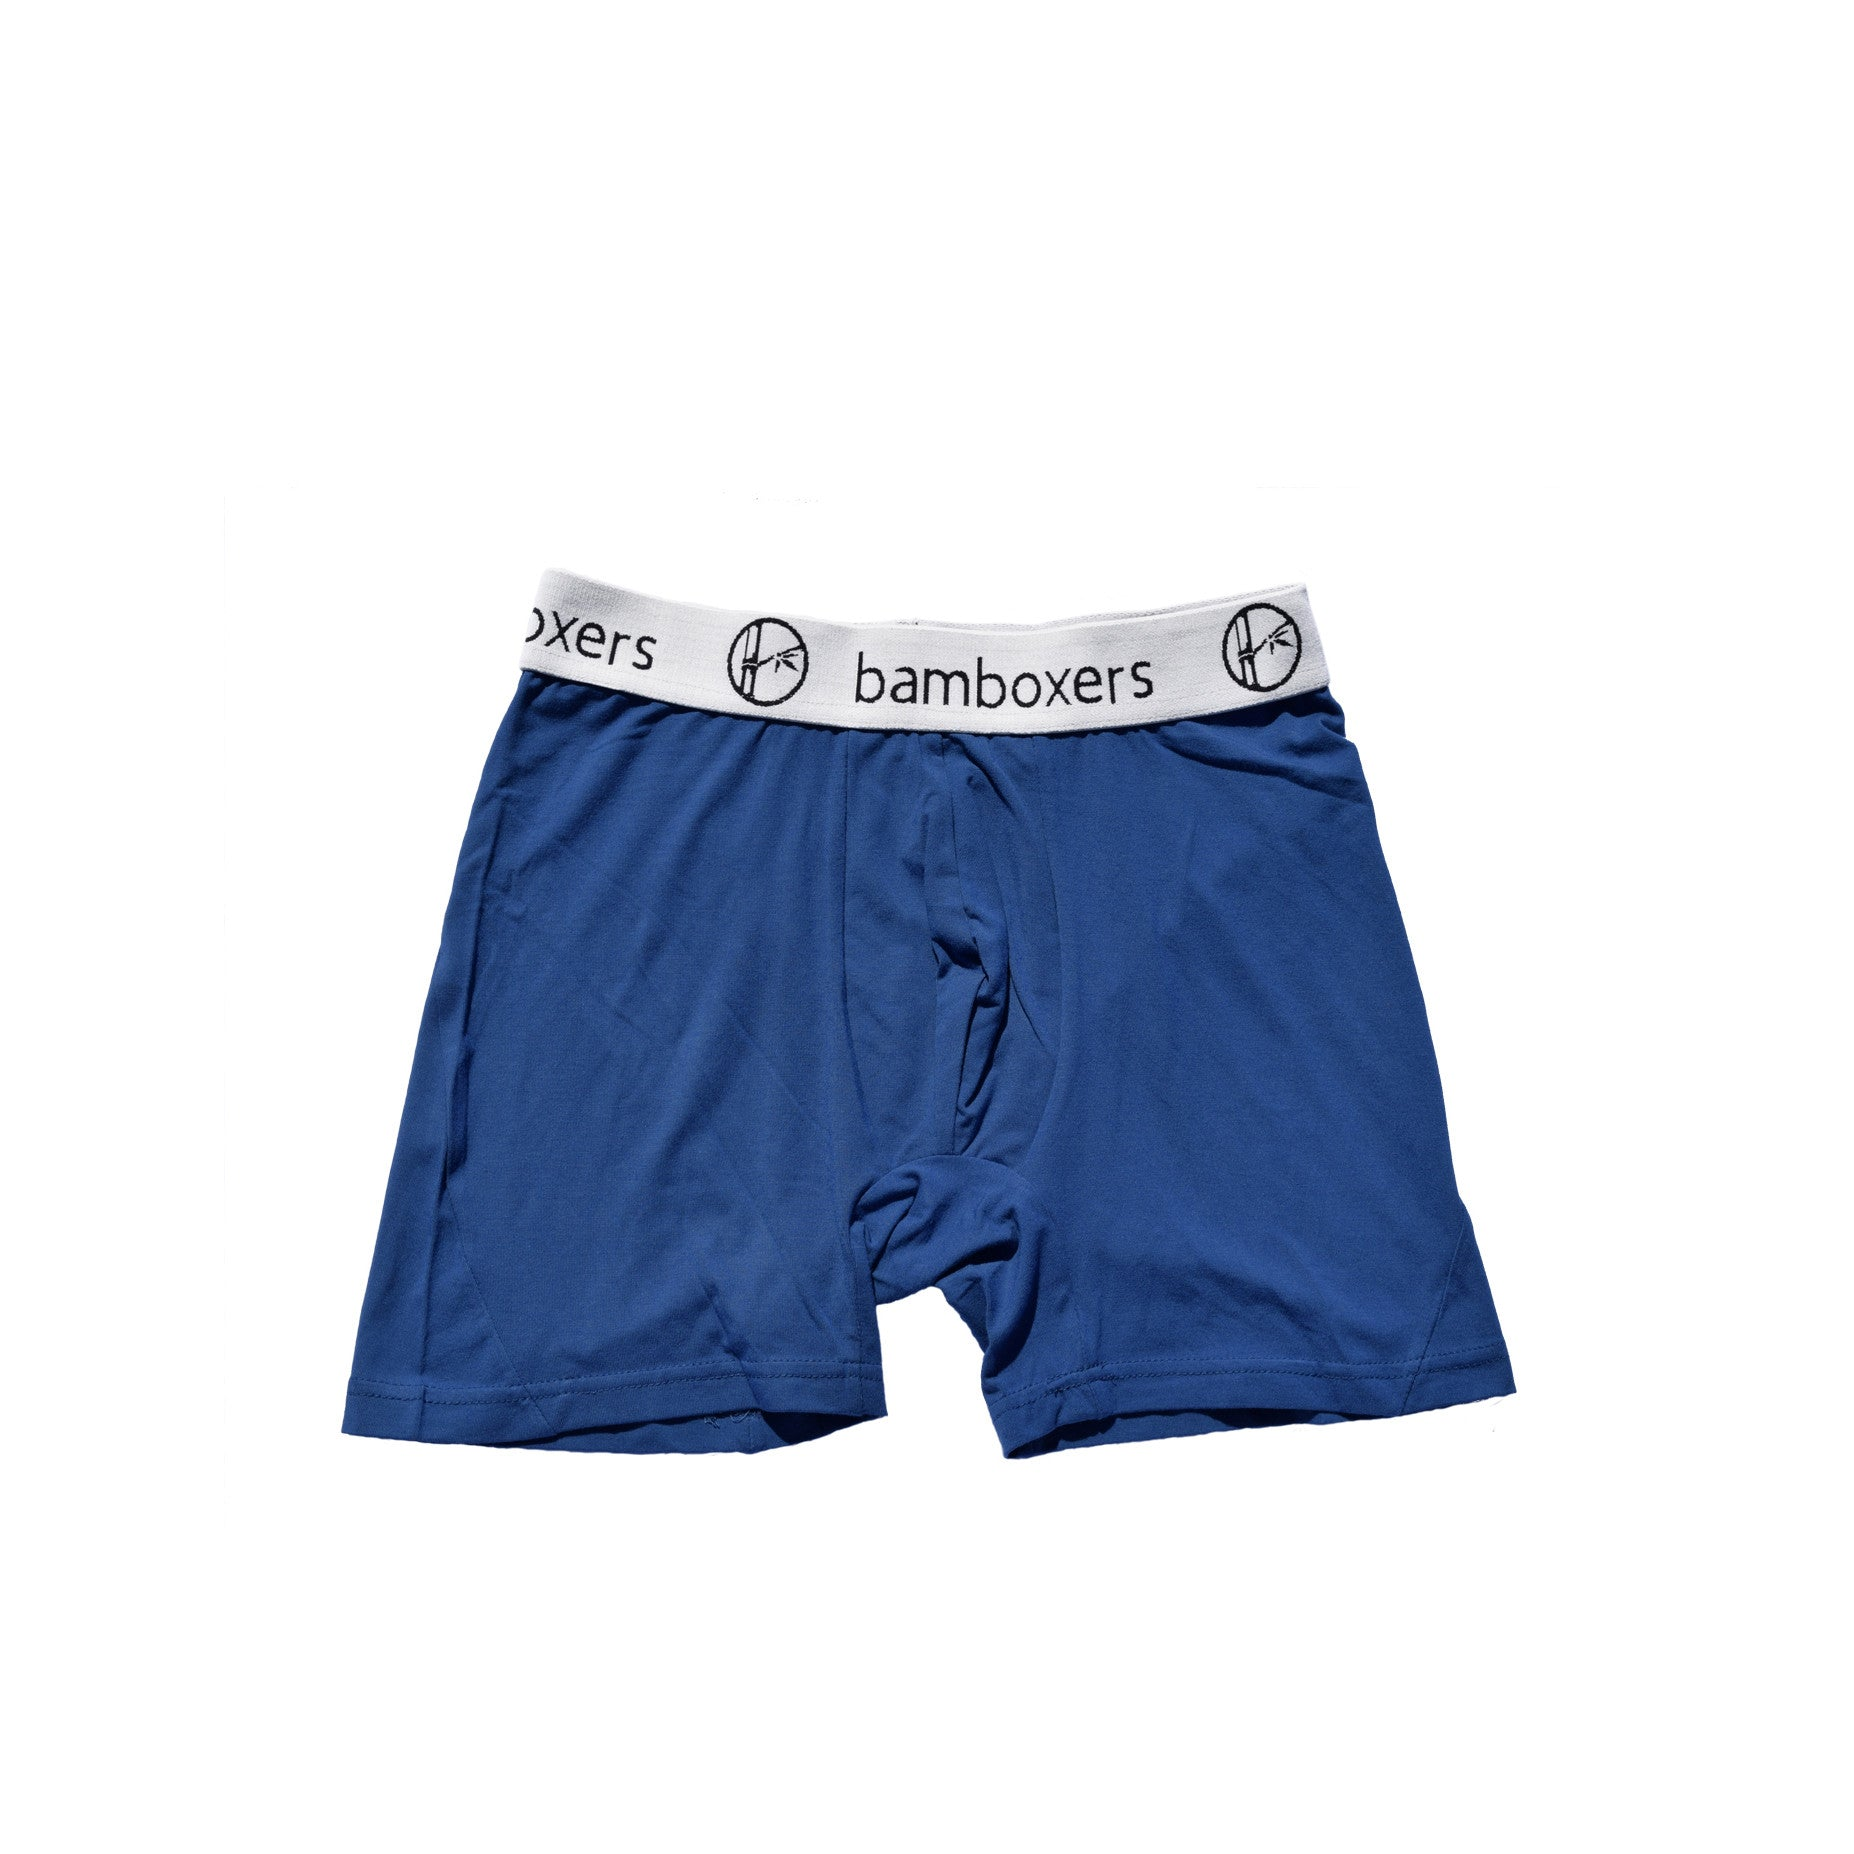 Bamboxers - Seattle Blue - bamboo boxer briefs